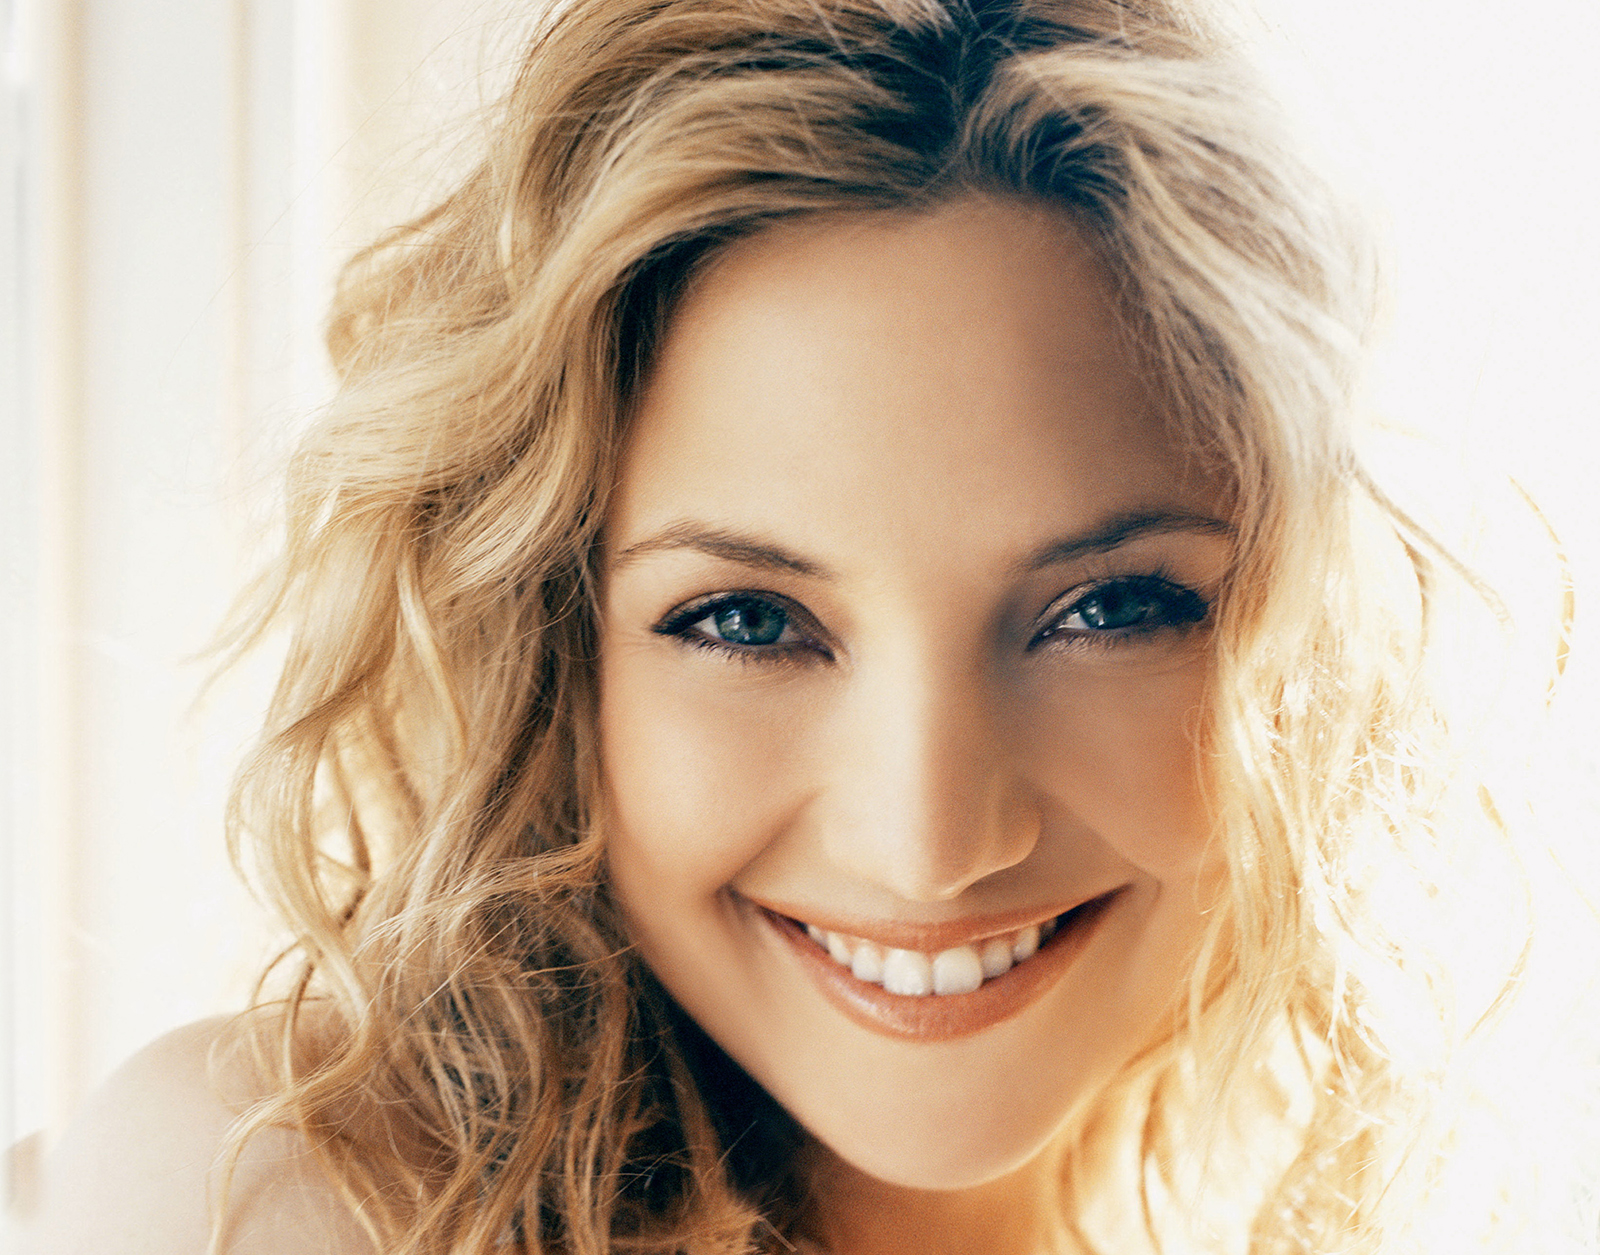 Kate Hudson HD Wallpaper   HD Wallpapers Backgrounds of Your Choice 1600x1255